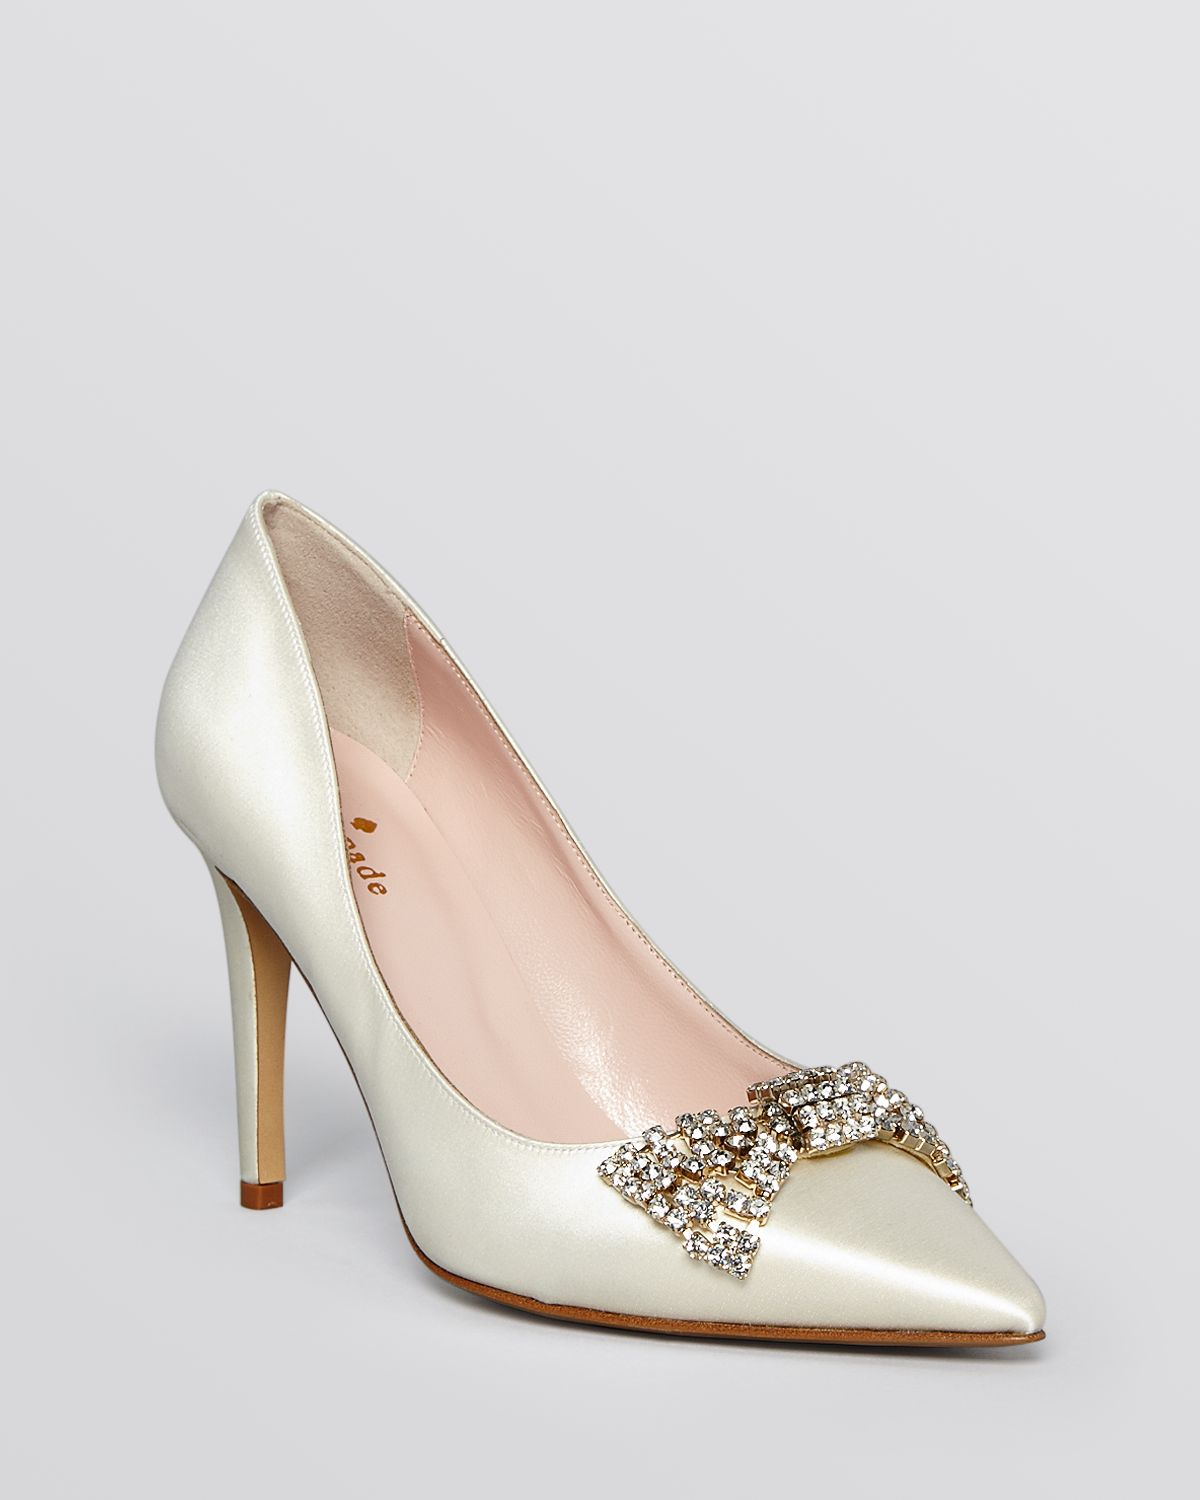 7e583cf61095 Lyst - Kate Spade Pointed Toe Evening Pumps - Pez High Heel in White